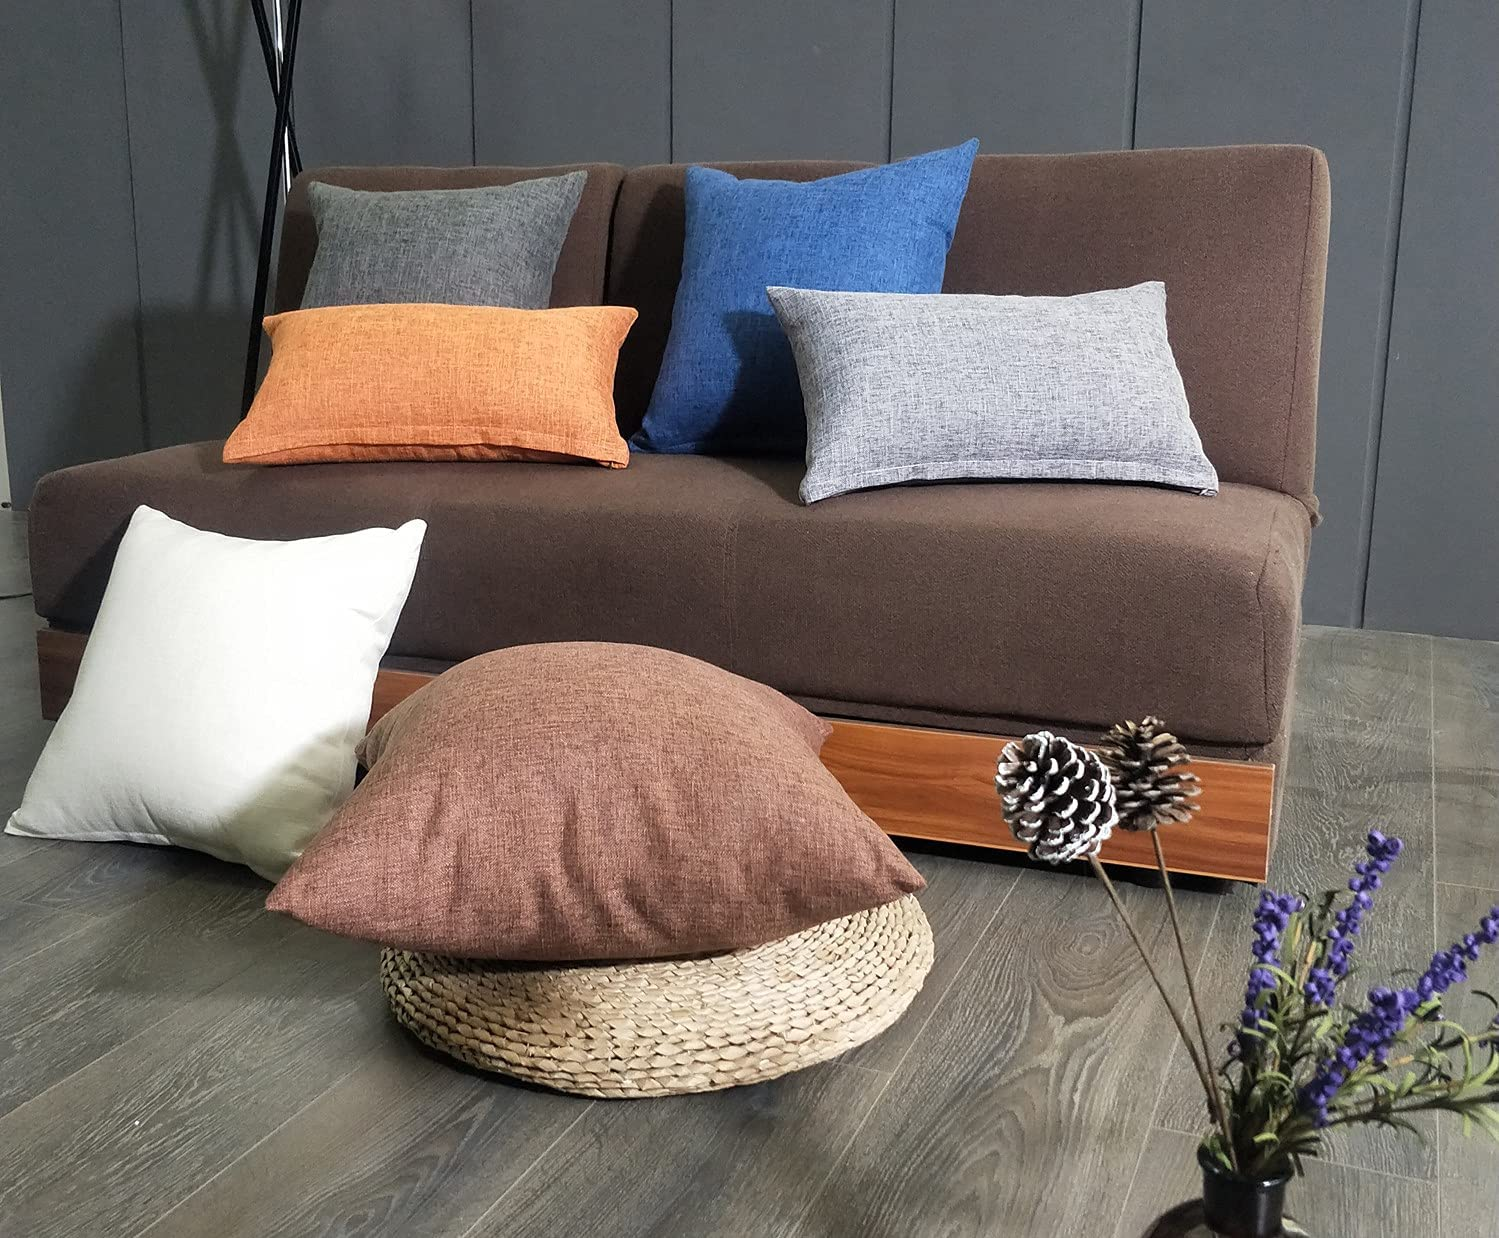 Sincere Matching Lumbar Pillow Rectangular Limited price sale Recommended Pillows Custom for S